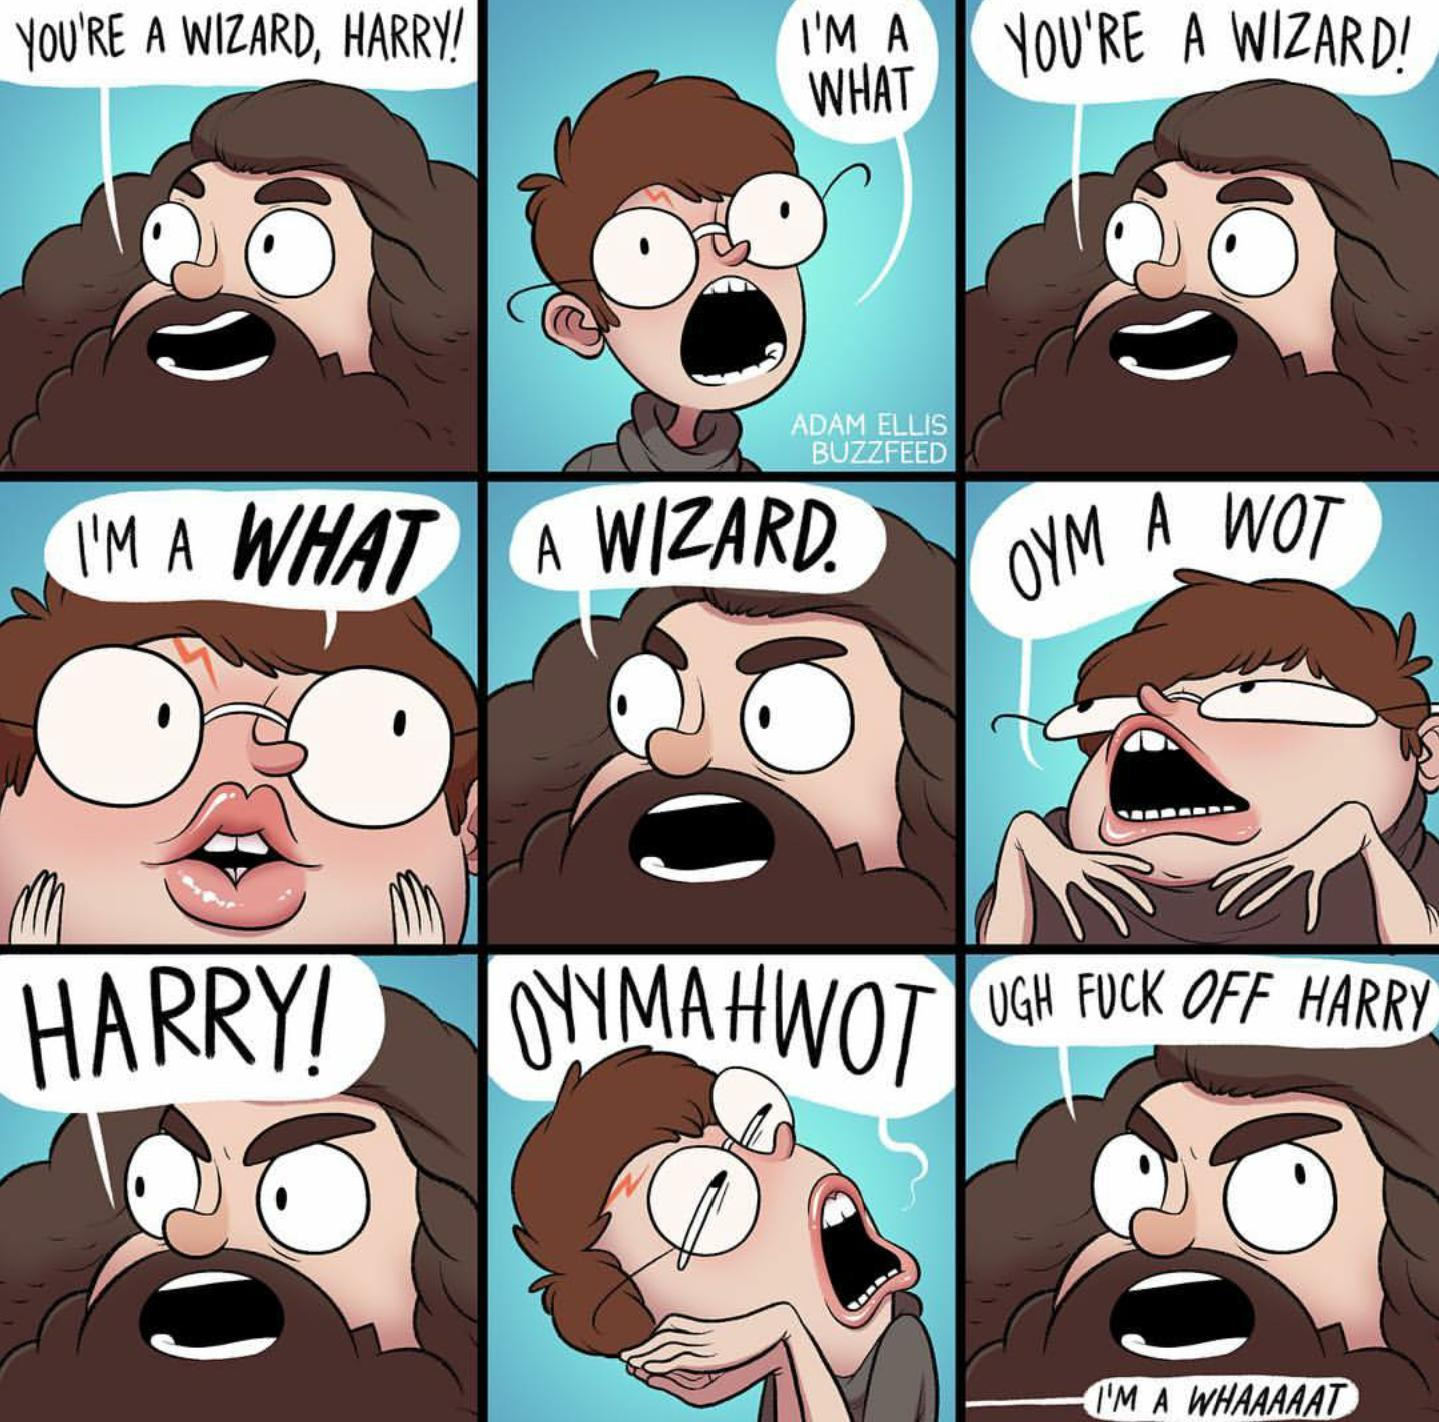 M A ORE WIZARD WHAT ADAM ELLIS BUZZFEED YMAH